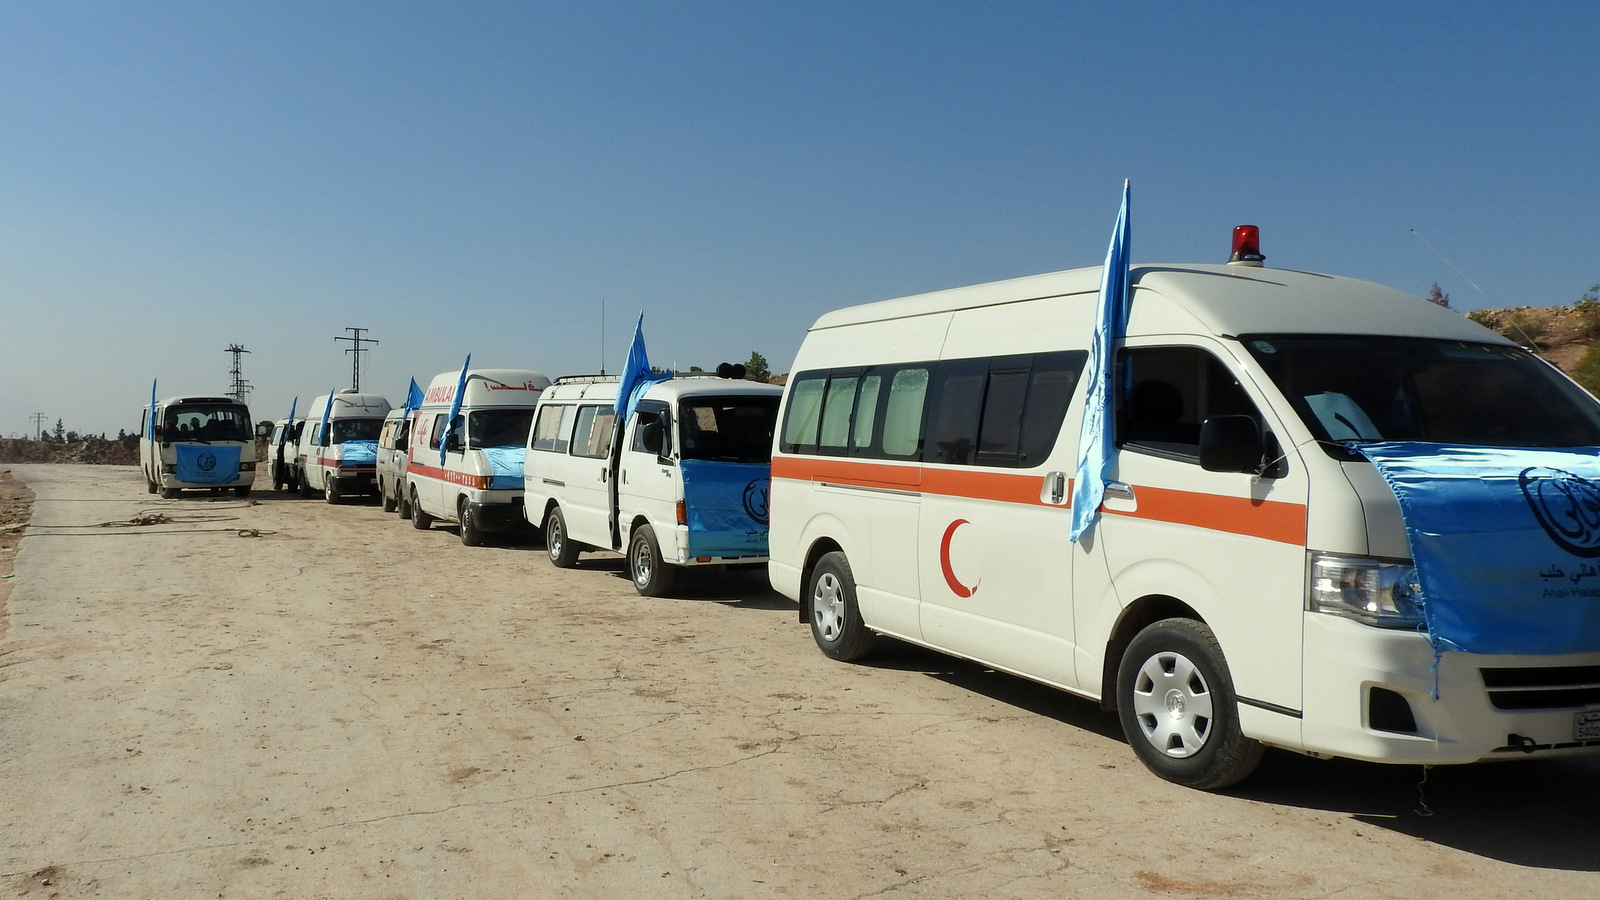 Ten ambulances wait at the Castello Road crossing to treat anyone exiting via the humanitarian corridors established by the Syrian government and Russia, including militants who lay down their arms. Nov. 4, 2016. (Photo: Eva Bartlett)